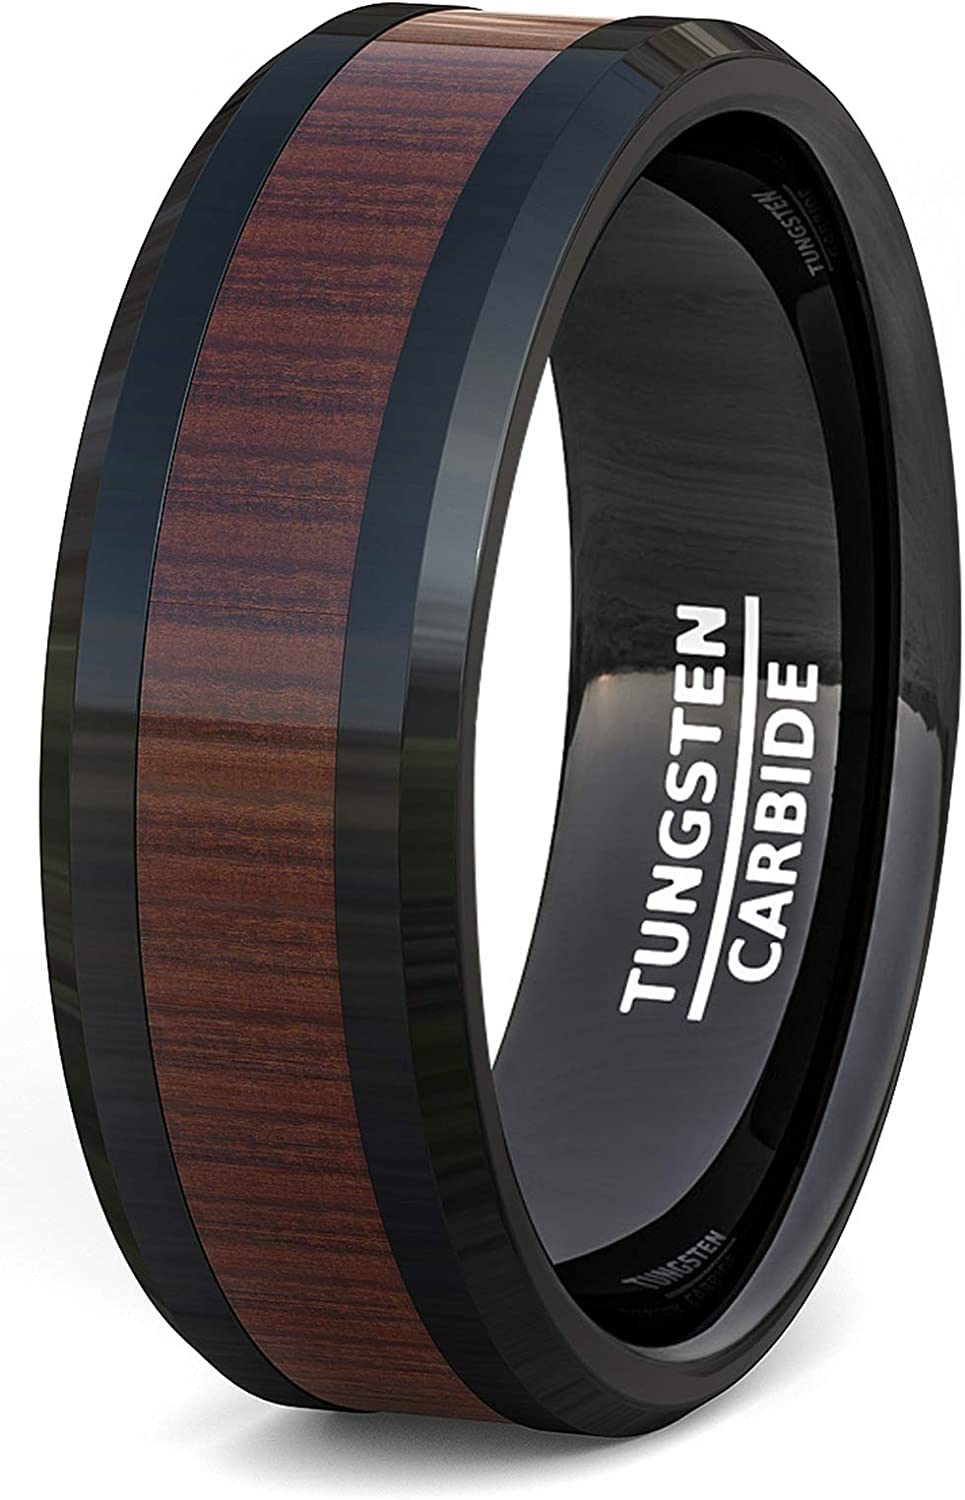 Duke Collections Mens Wedding Band Black Tungsten Ring Wood Pattern Inlay Beveled Edge Comfort Fit